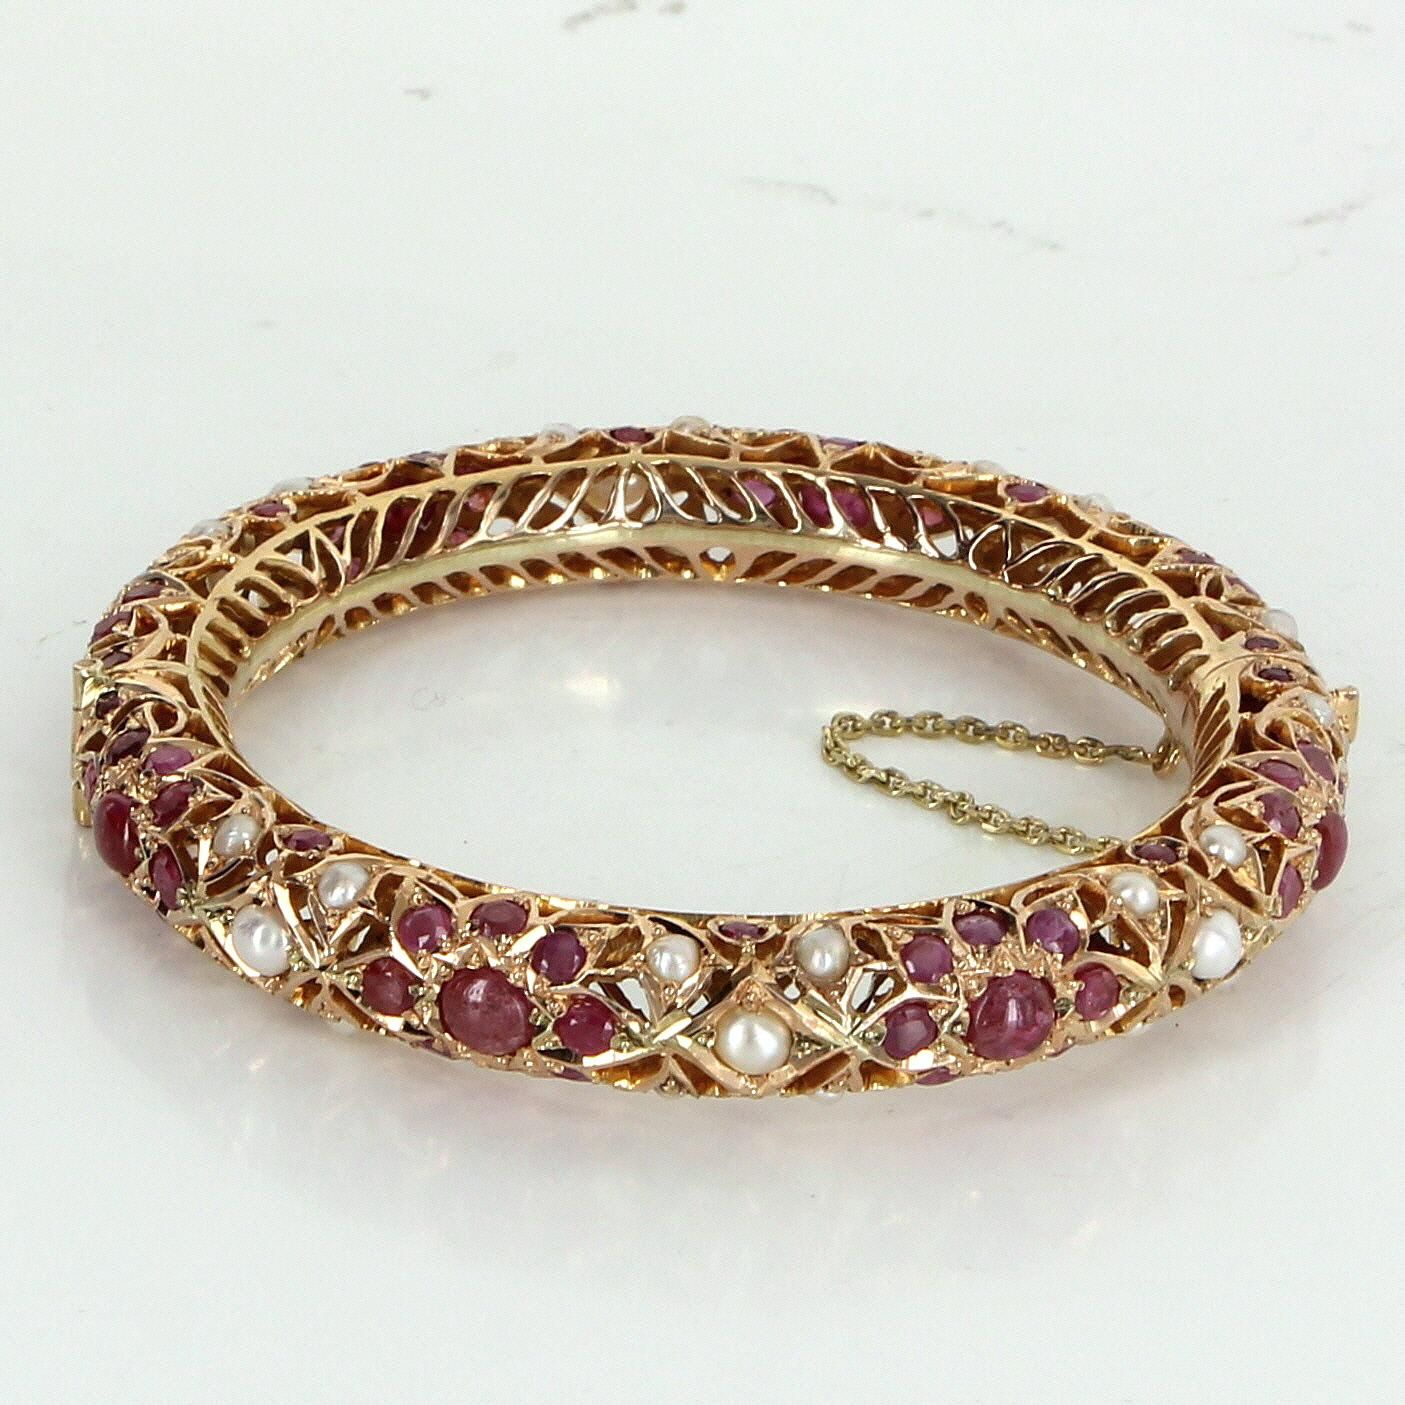 gold plated sterling split flat hammerd bangles rough uniq products cut karat jewelry bangle silver bracelets bracelet amethyst